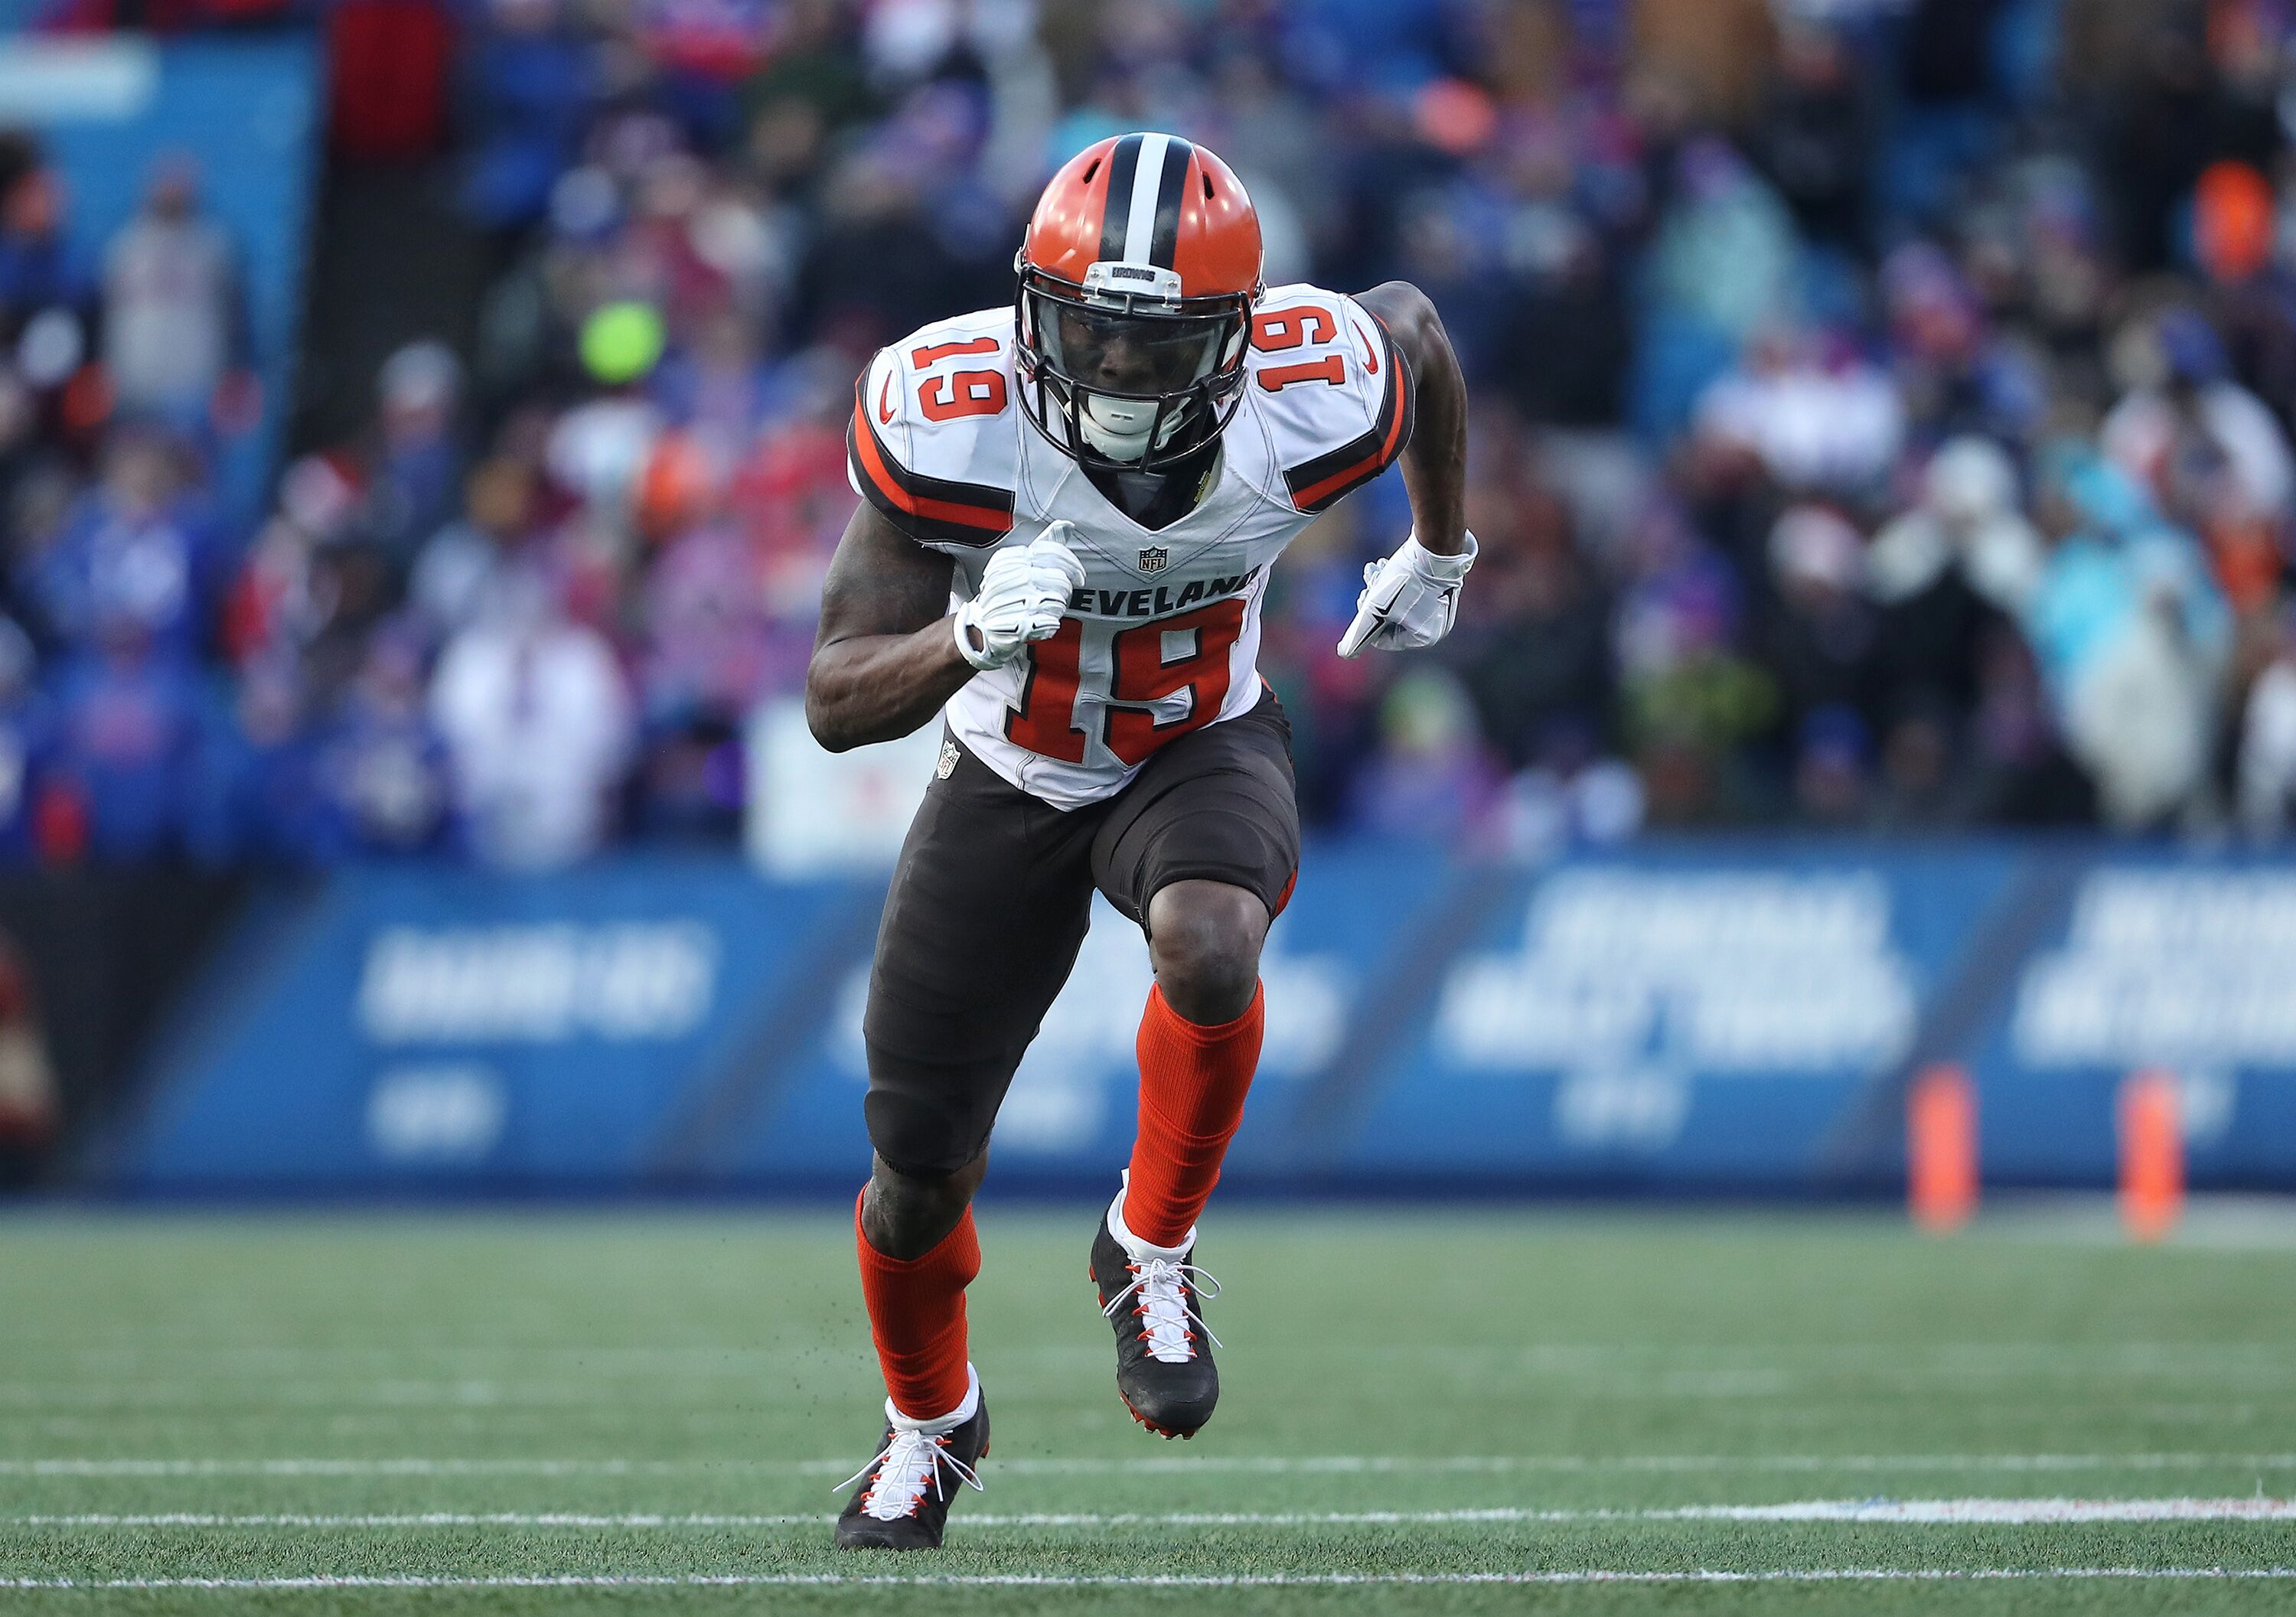 This offseason has created quite a bit of excitement around the Cleveland Browns yes the same team that went 016 last year but there reportedly isnt